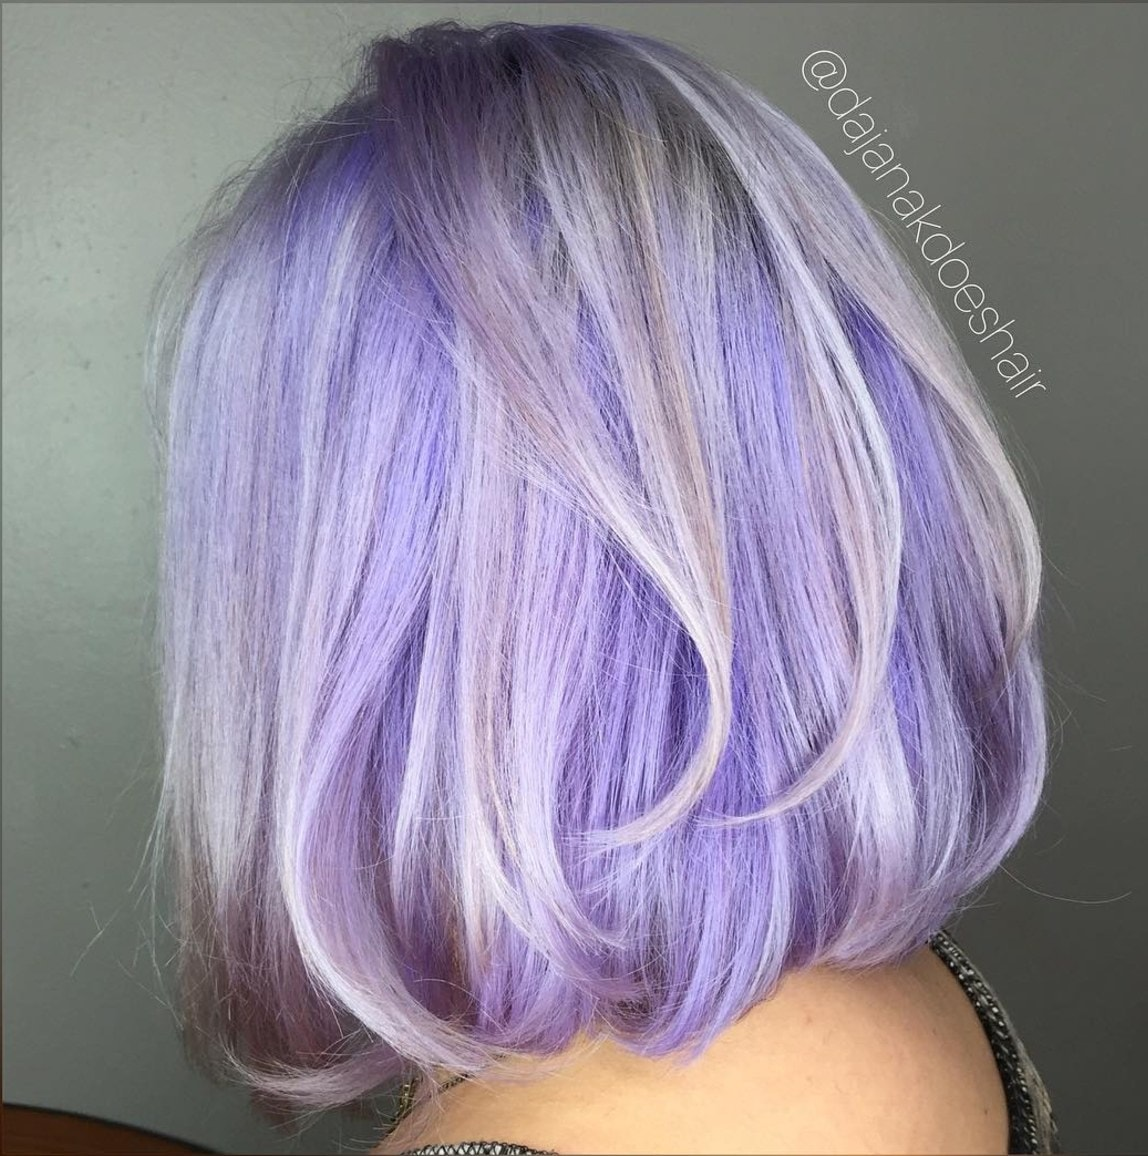 12 Best Purple Hair Color Ideas for Women in 12  All Things Hair US